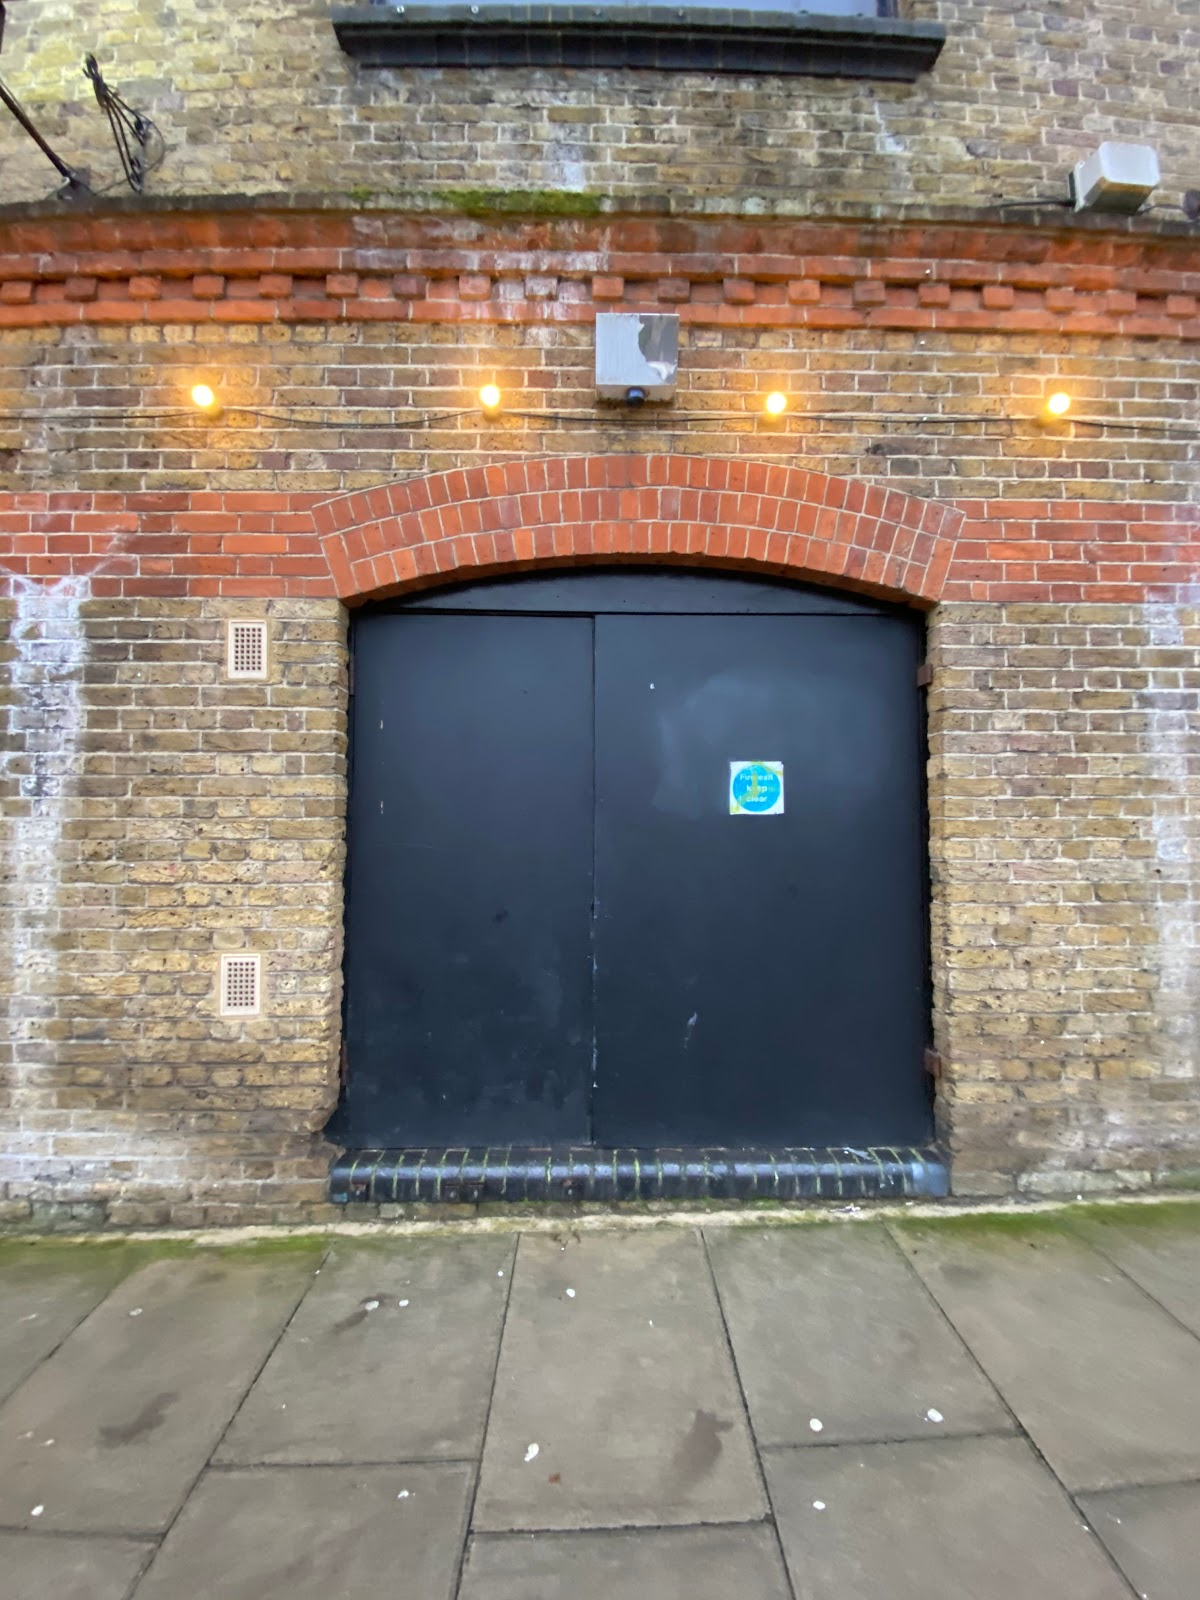 The access will be through the left hand side of the double doors